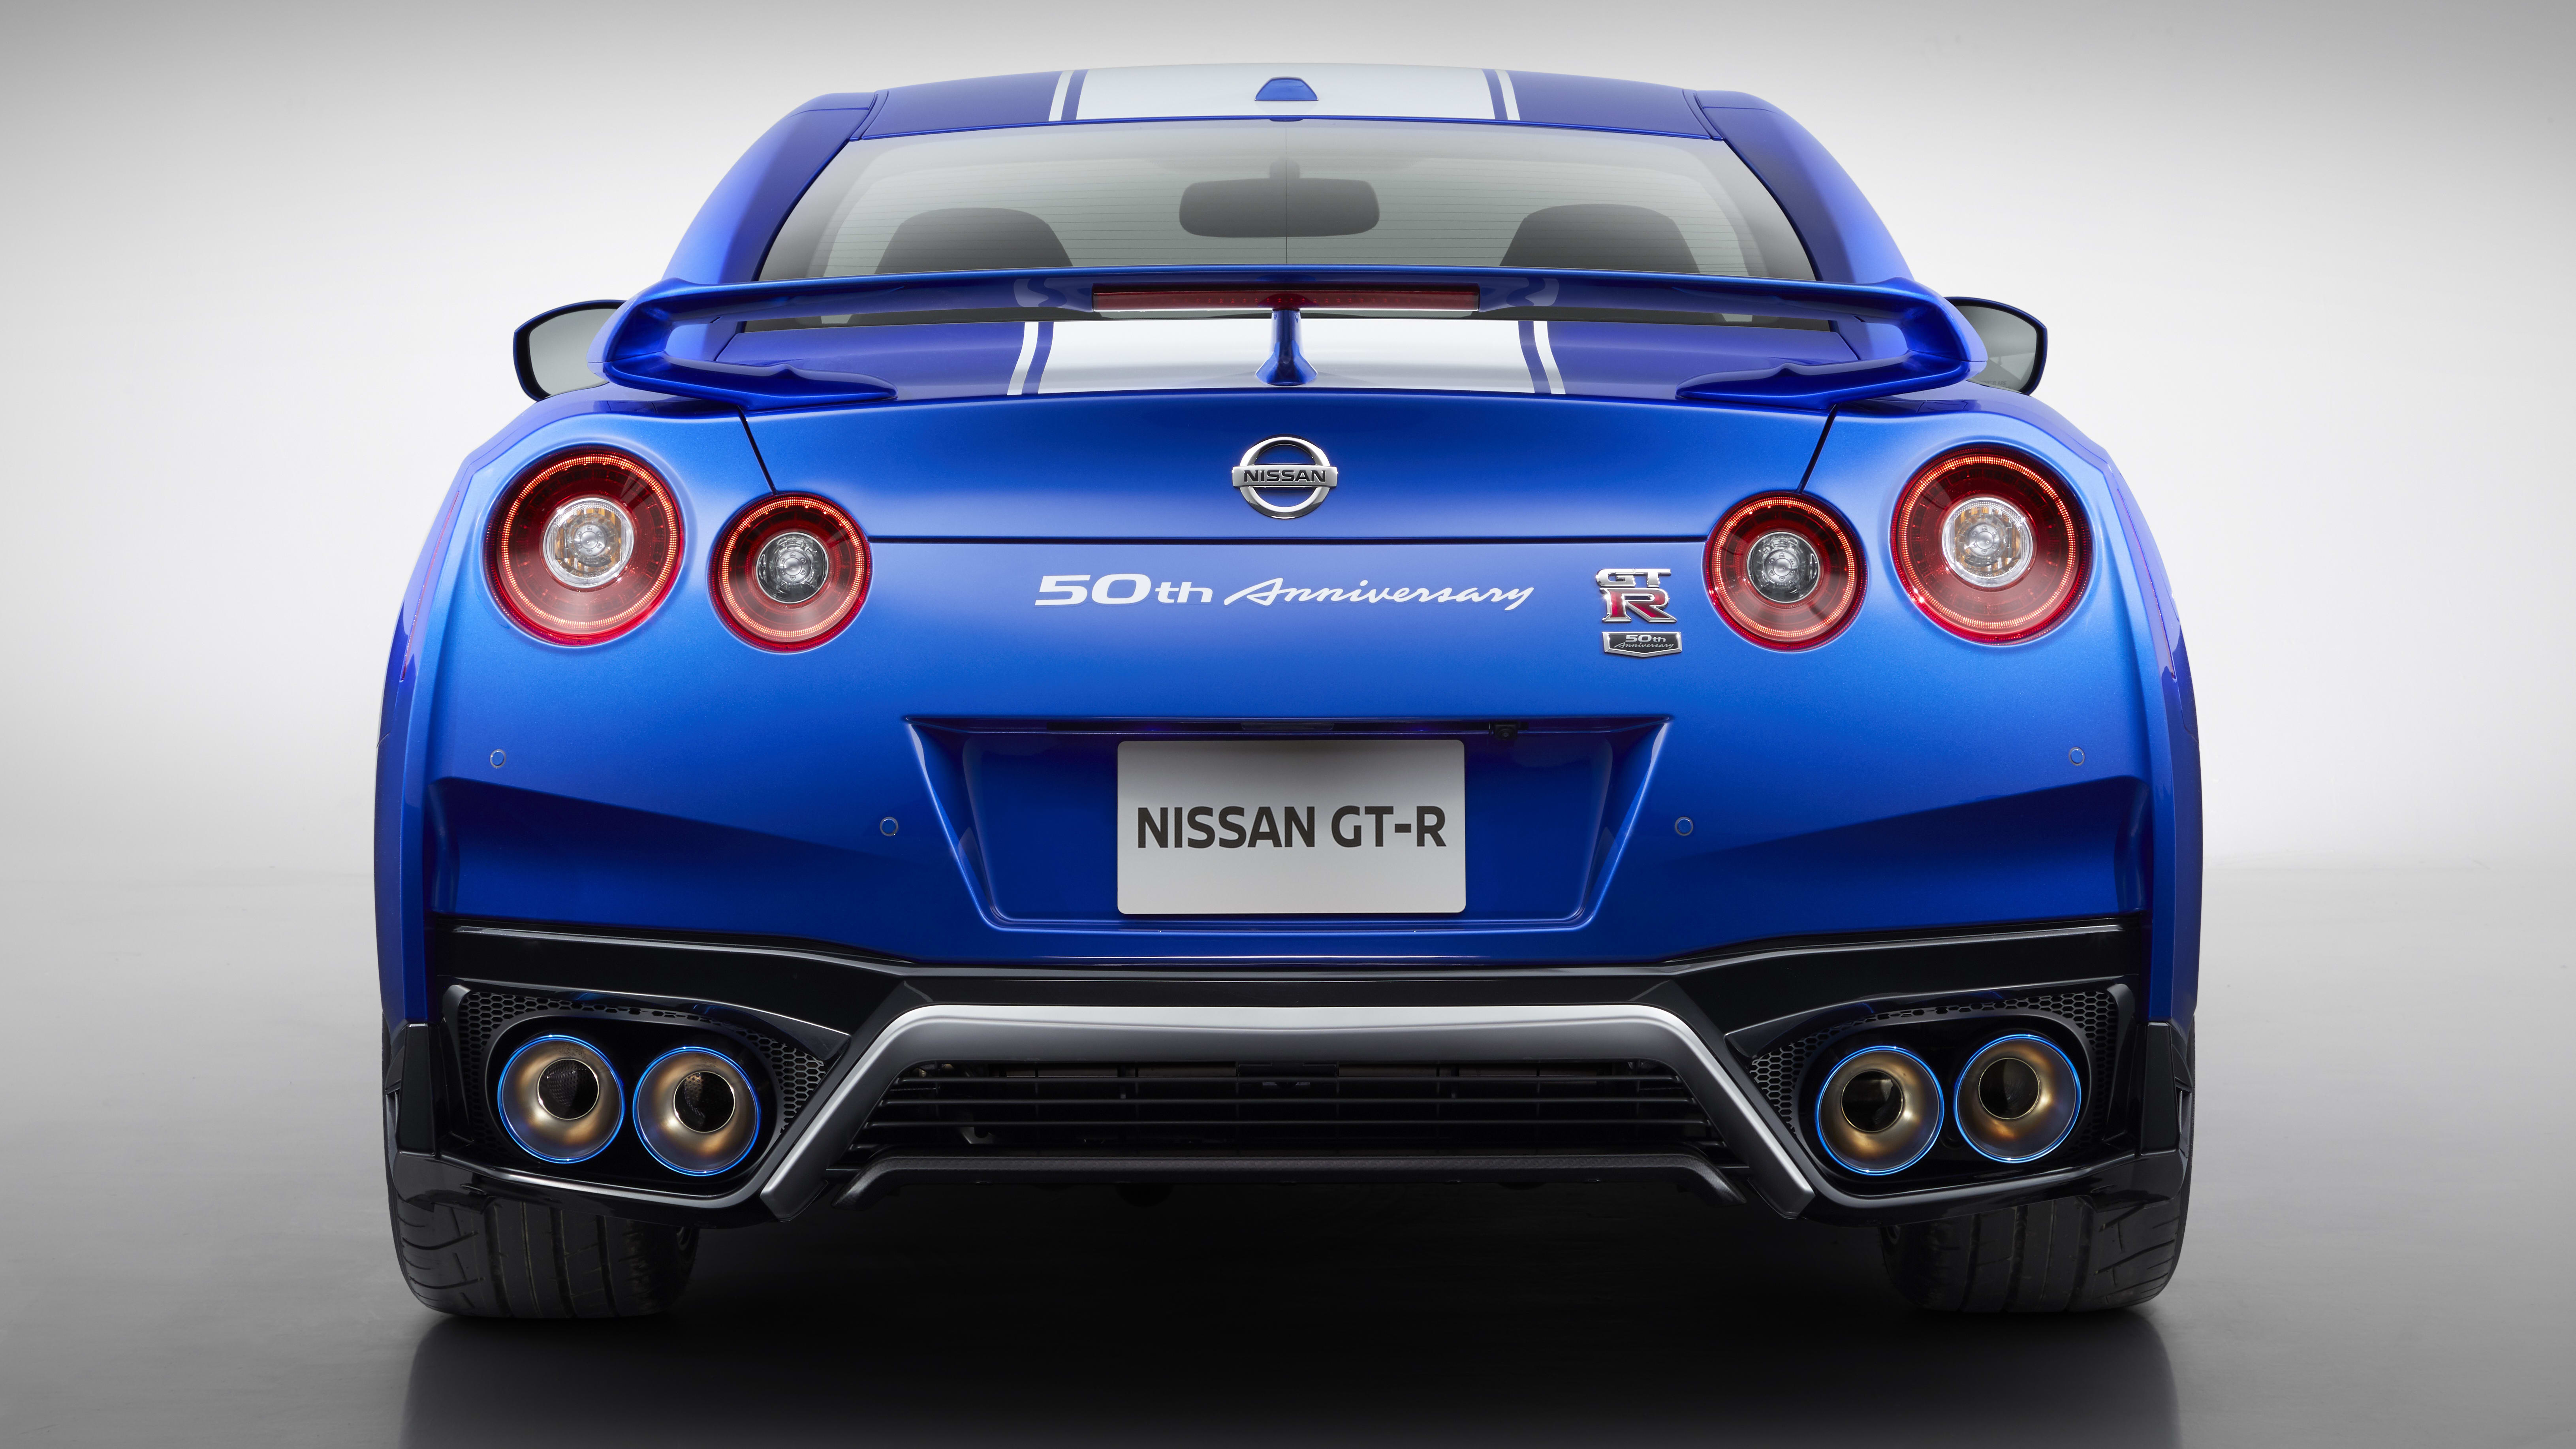 2020 Nissan Gt R Nismo And Gt R 50th Anniversary Revealed Caradvice